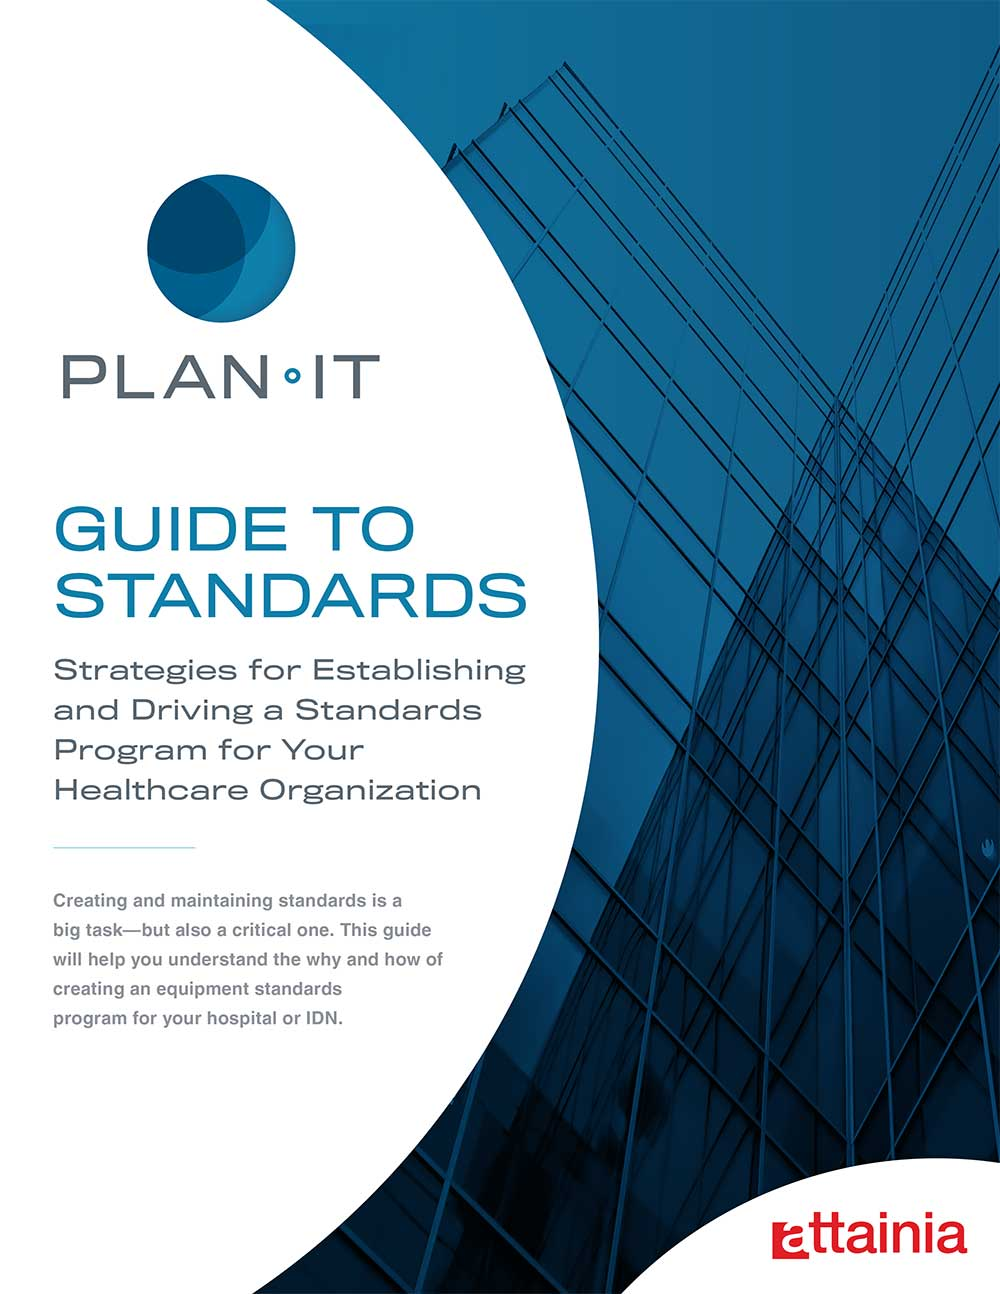 Strategies for Establishing and Driving a Standards Program for Your Healthcare Organization